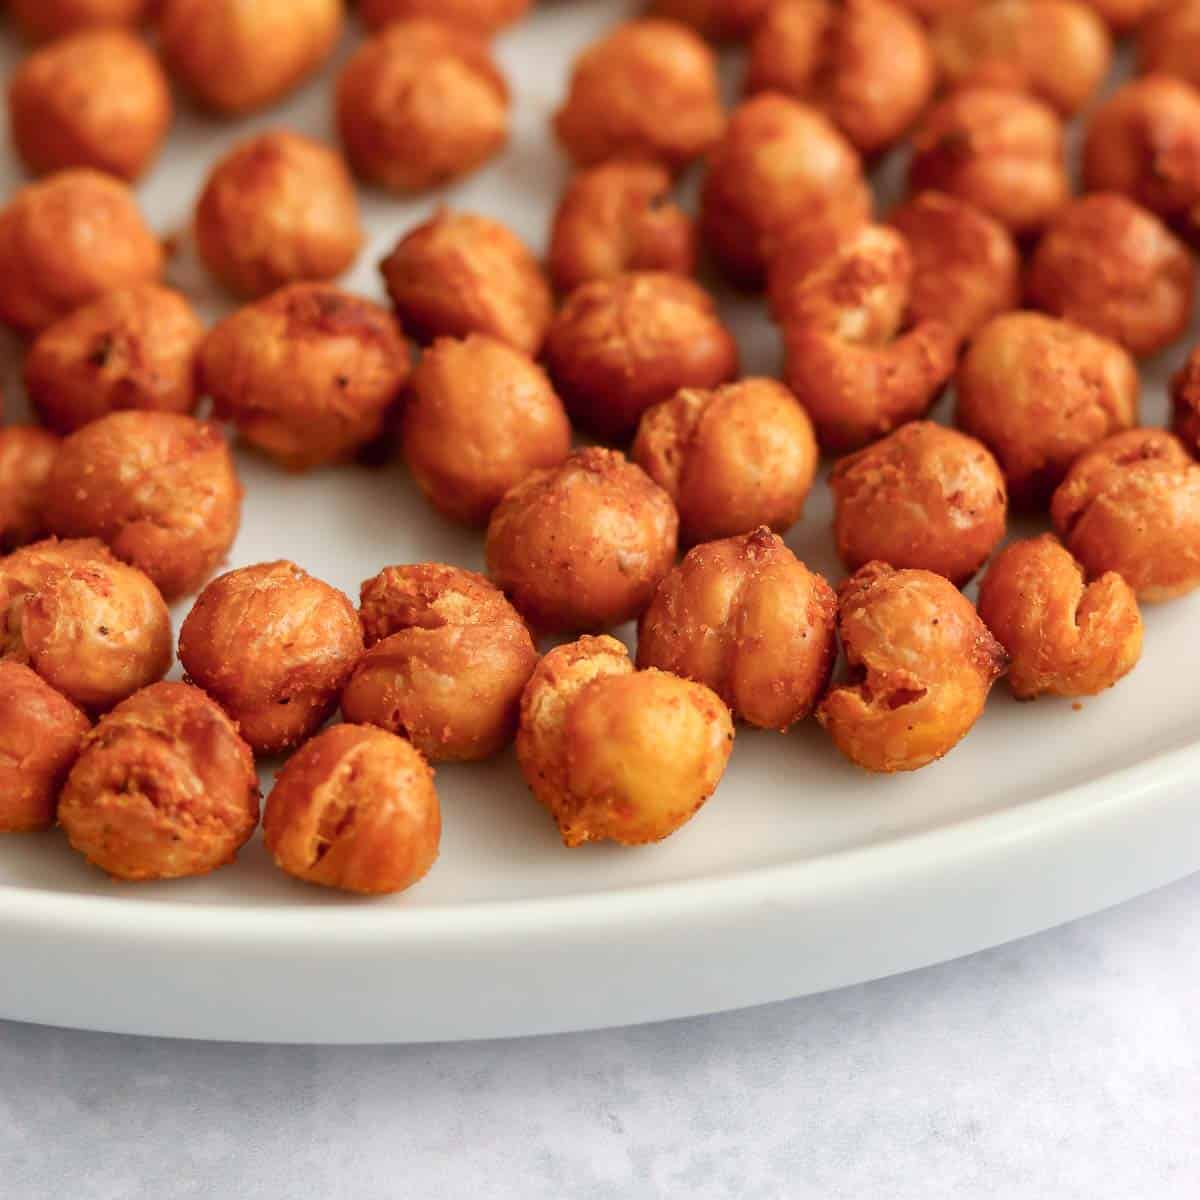 Close up side view of crispy chickpeas on a white plate on a marble surface.